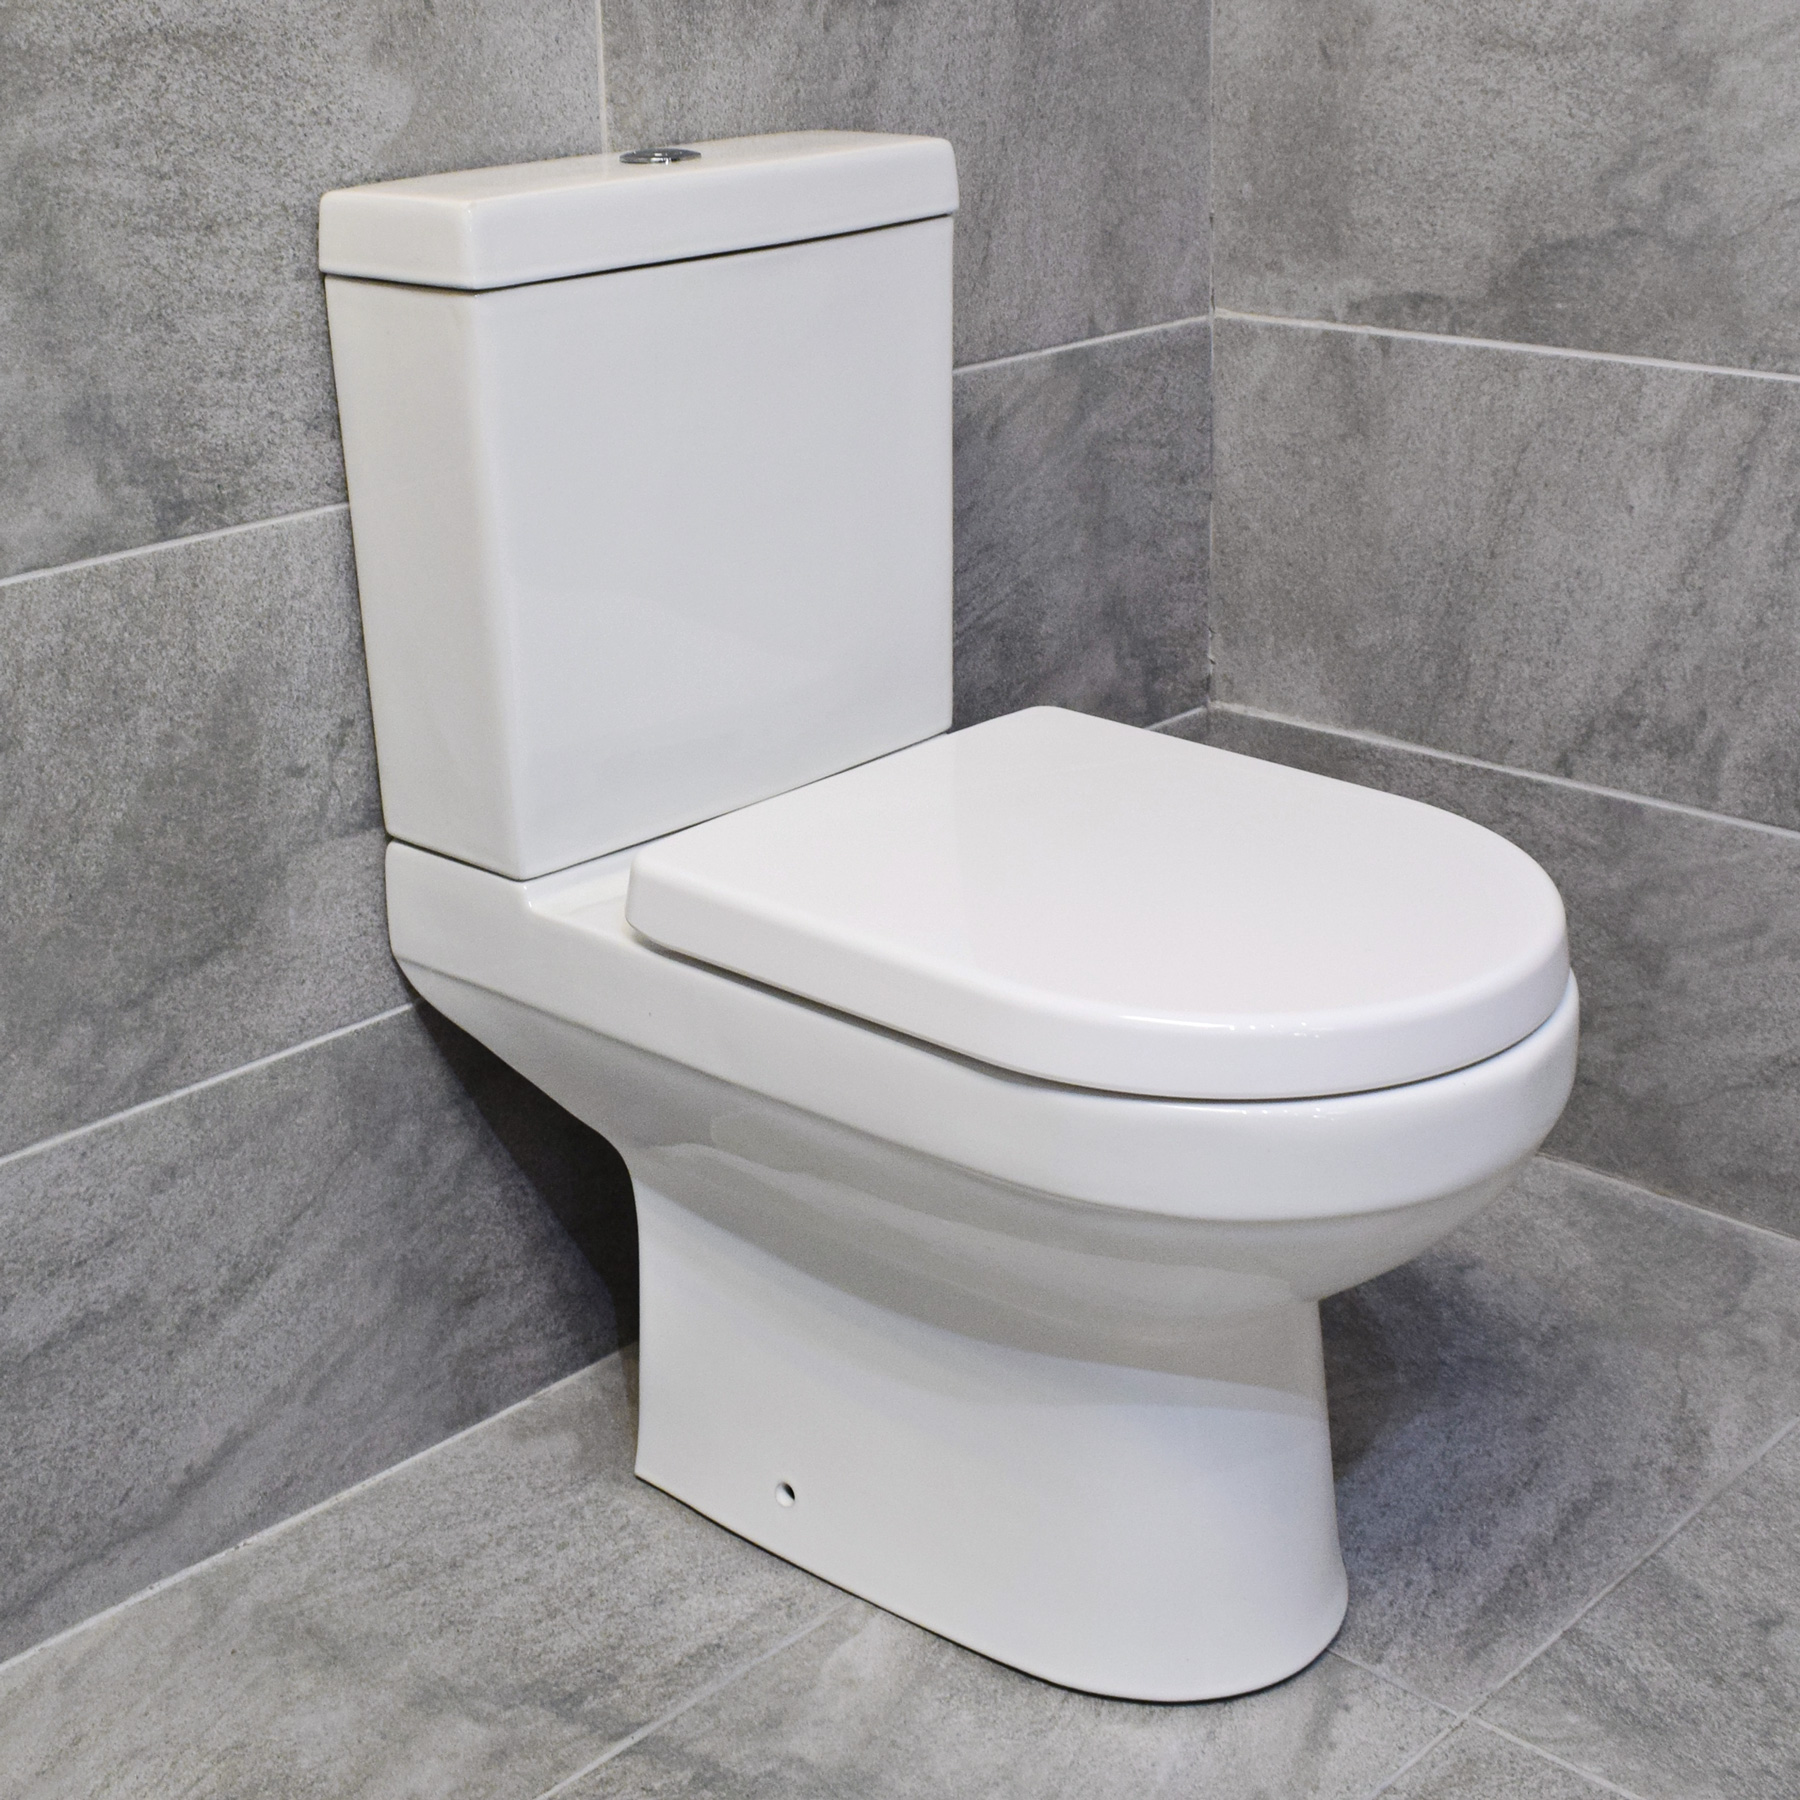 Hydros Charlie Close Coupled Toilet Modern WC + Fixing Kit | eBay